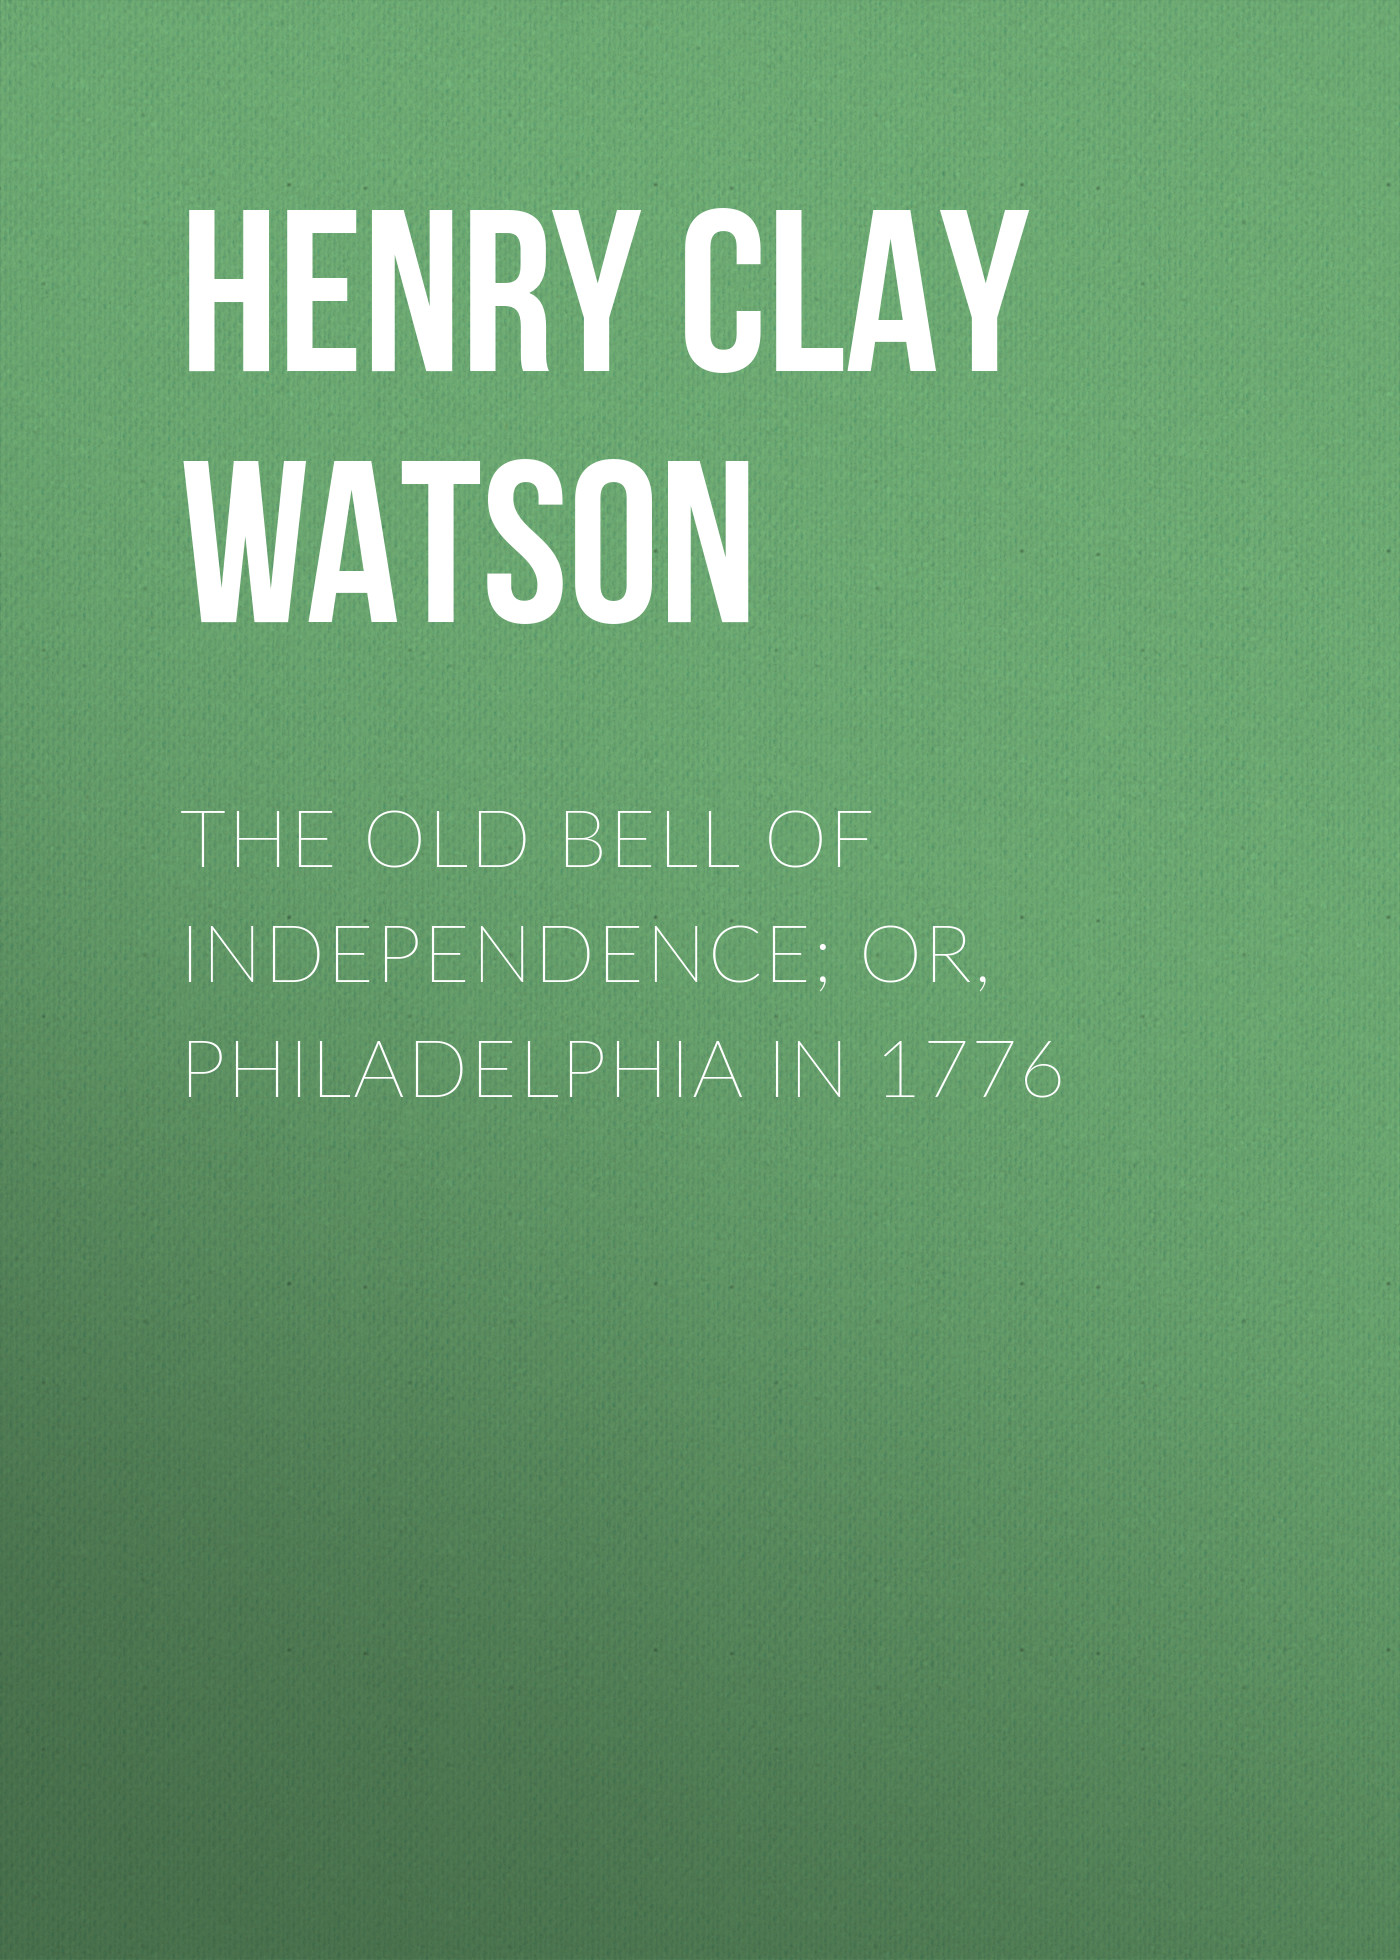 Henry Clay Watson The Old Bell of Independence; Or, Philadelphia in 1776